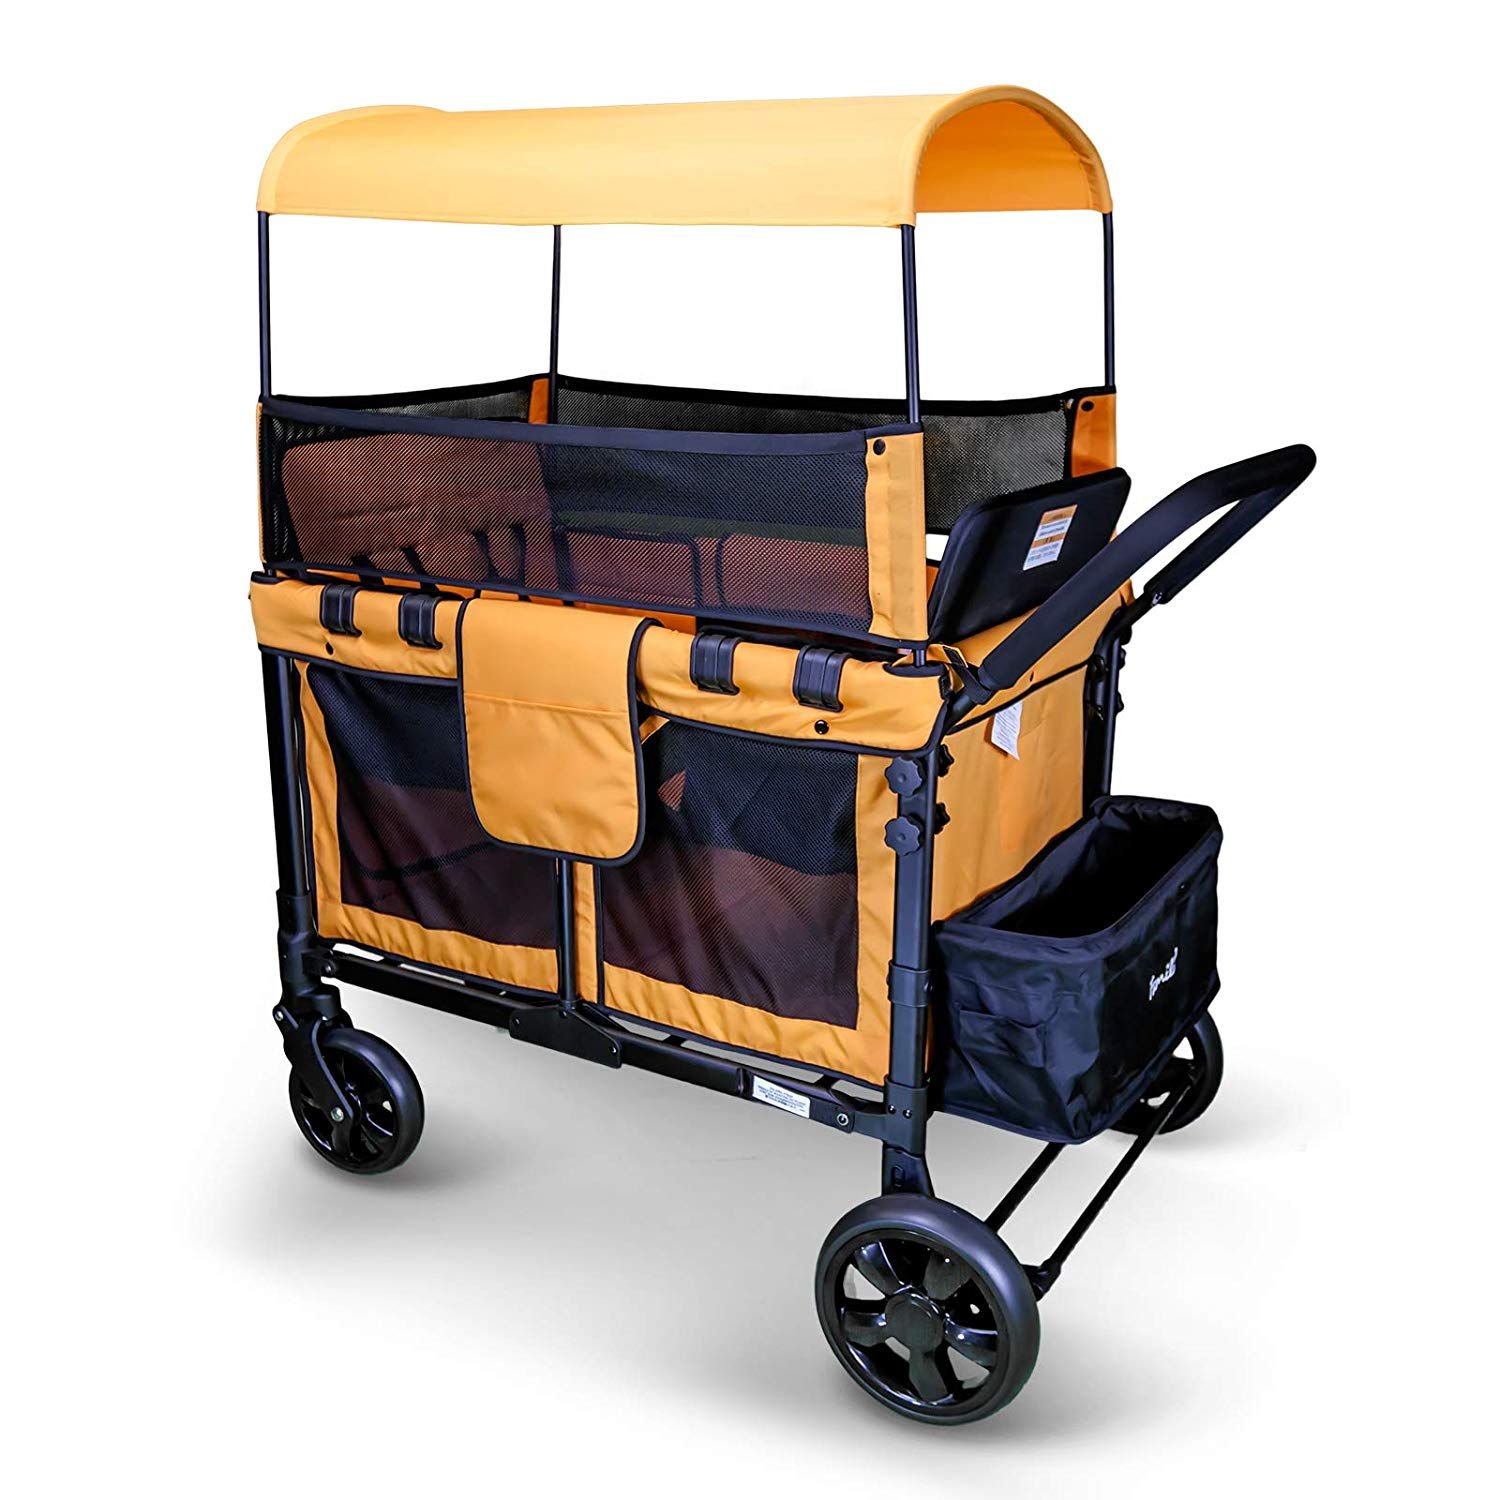 WonderFold 2-in-1 Heavy Duty Collapsible Folding Wagon Garden Safe Utility Cart